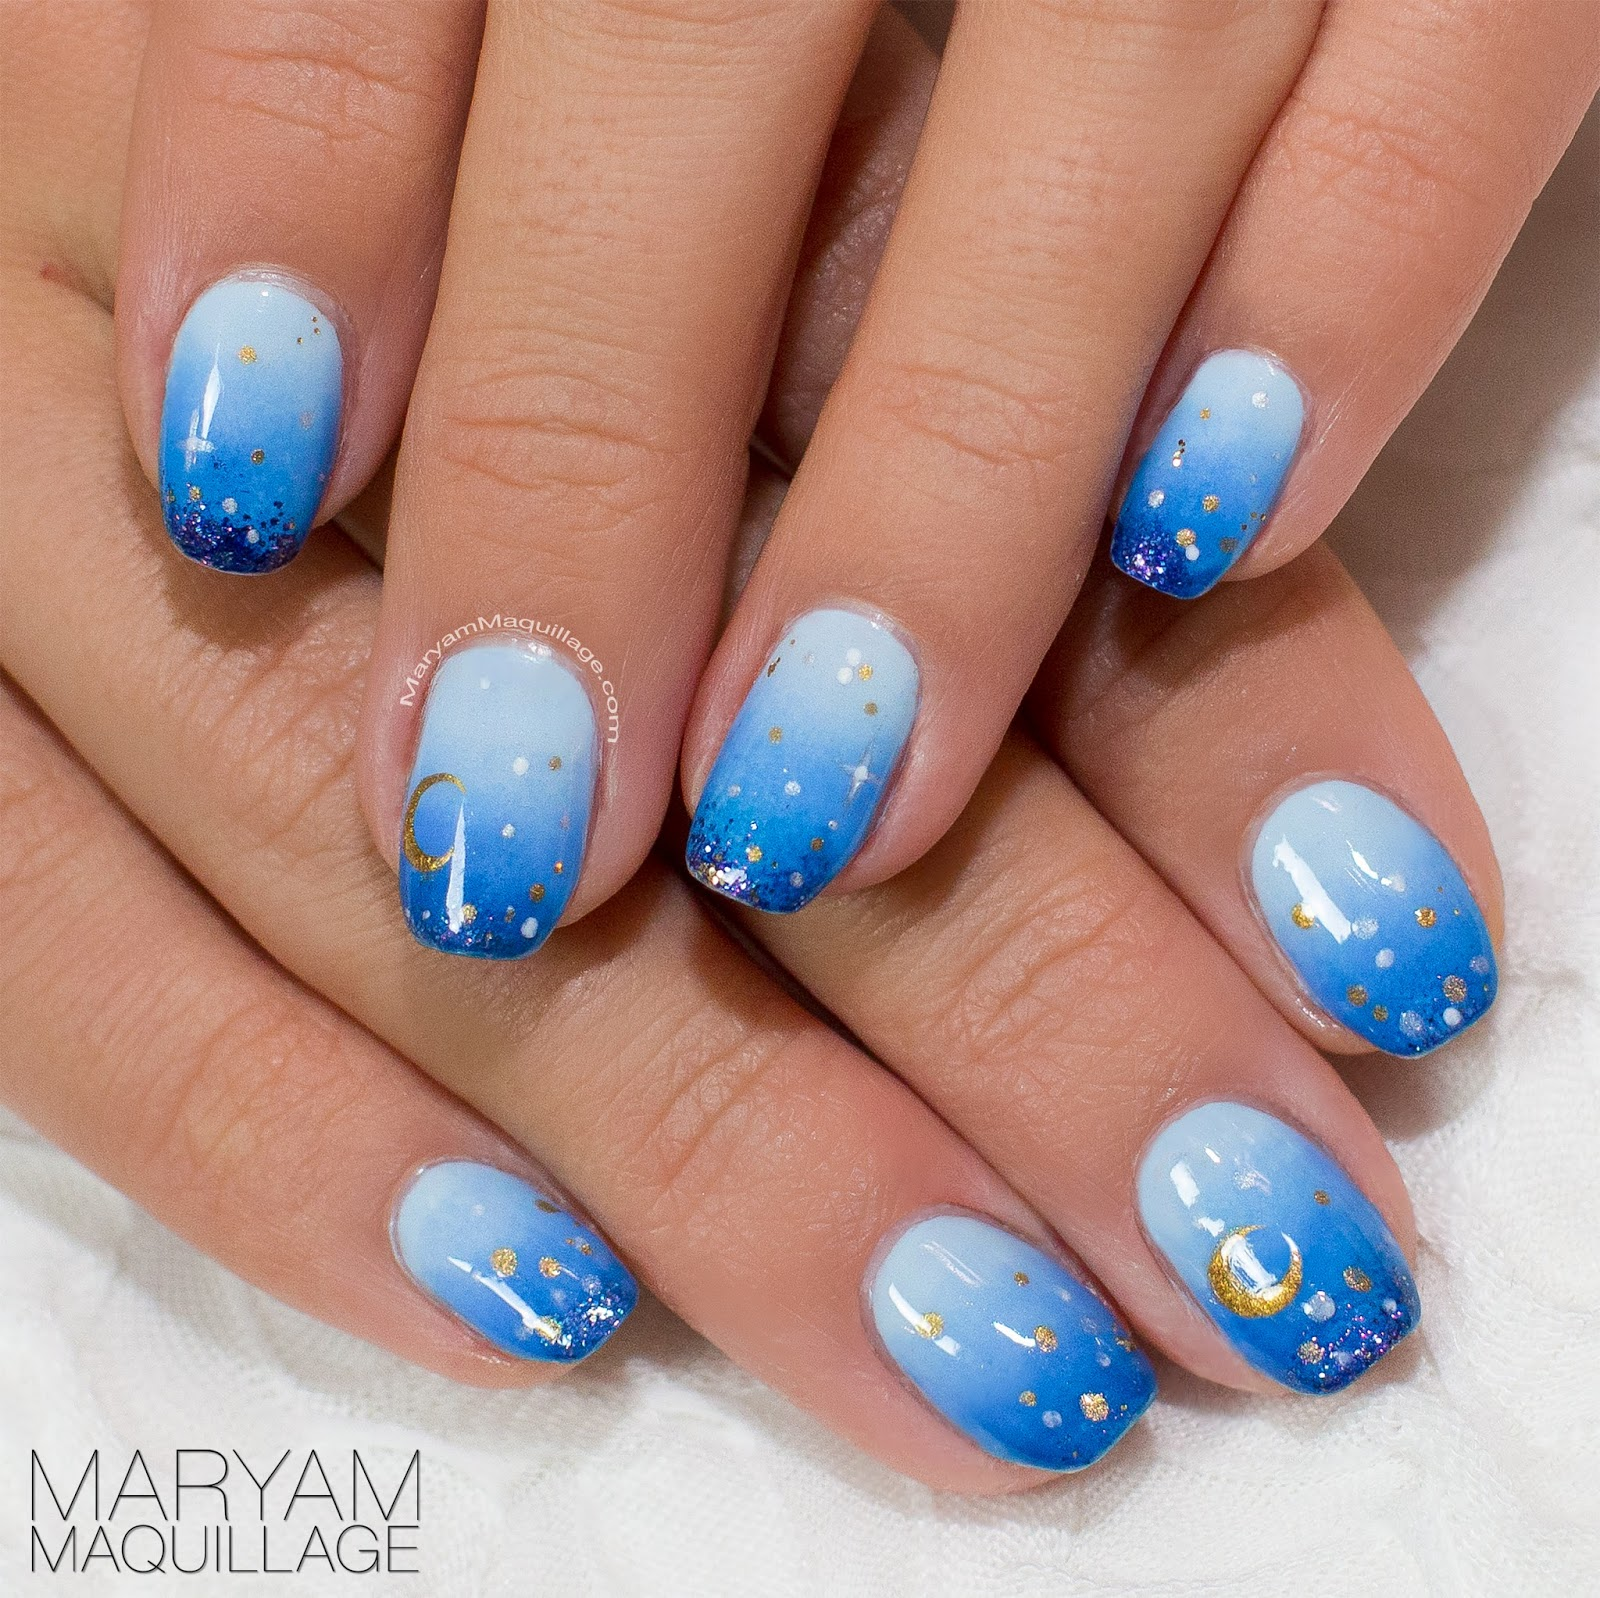 Maryam maquillage white nights ombr nail art for Nageldesign ombre